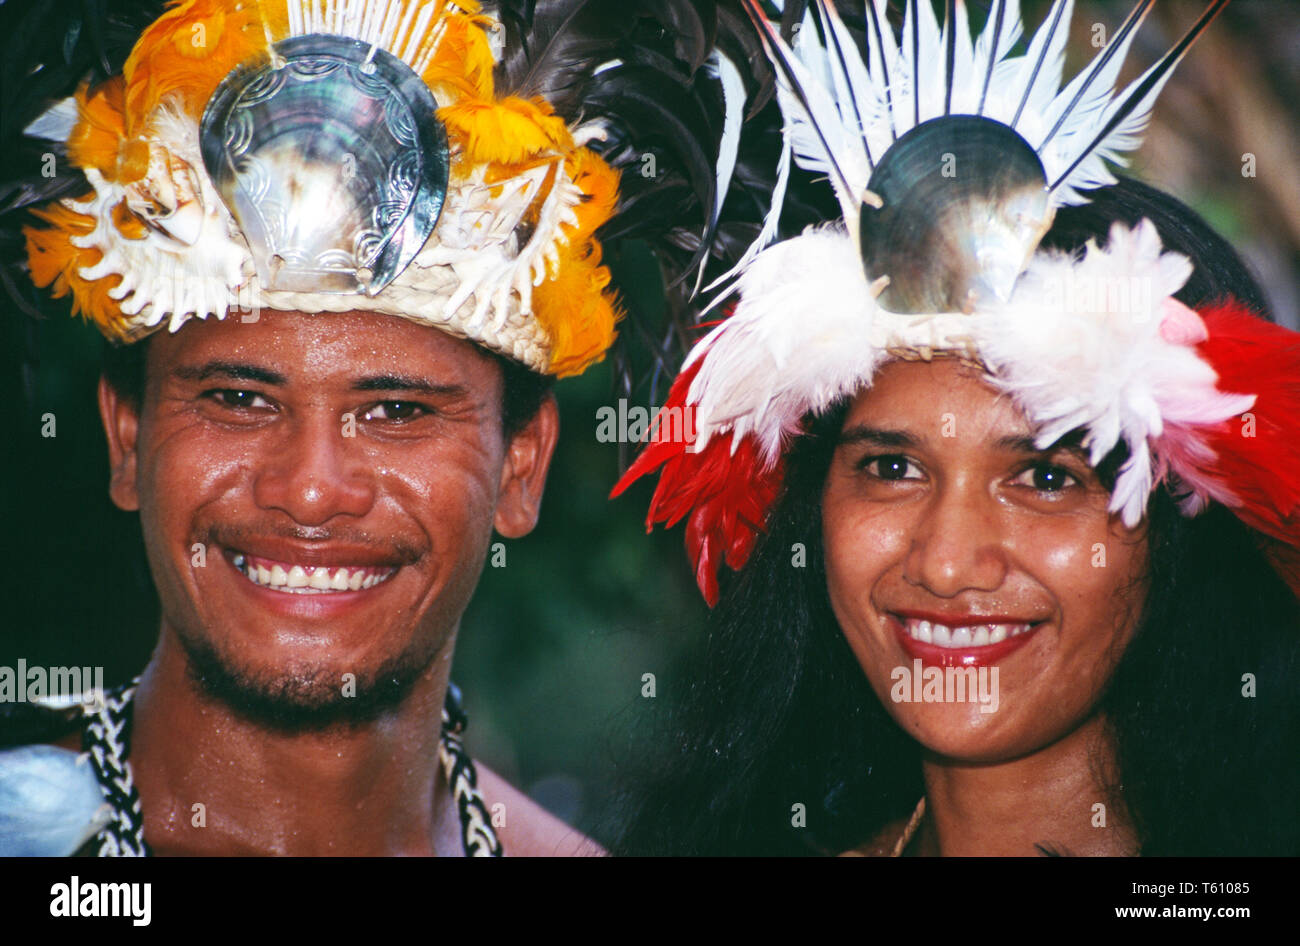 French Polynesia. Society Islands. Tahiti. Outdoor portrait  of Tahitian man and woman in traditional wedding costume. - Stock Image